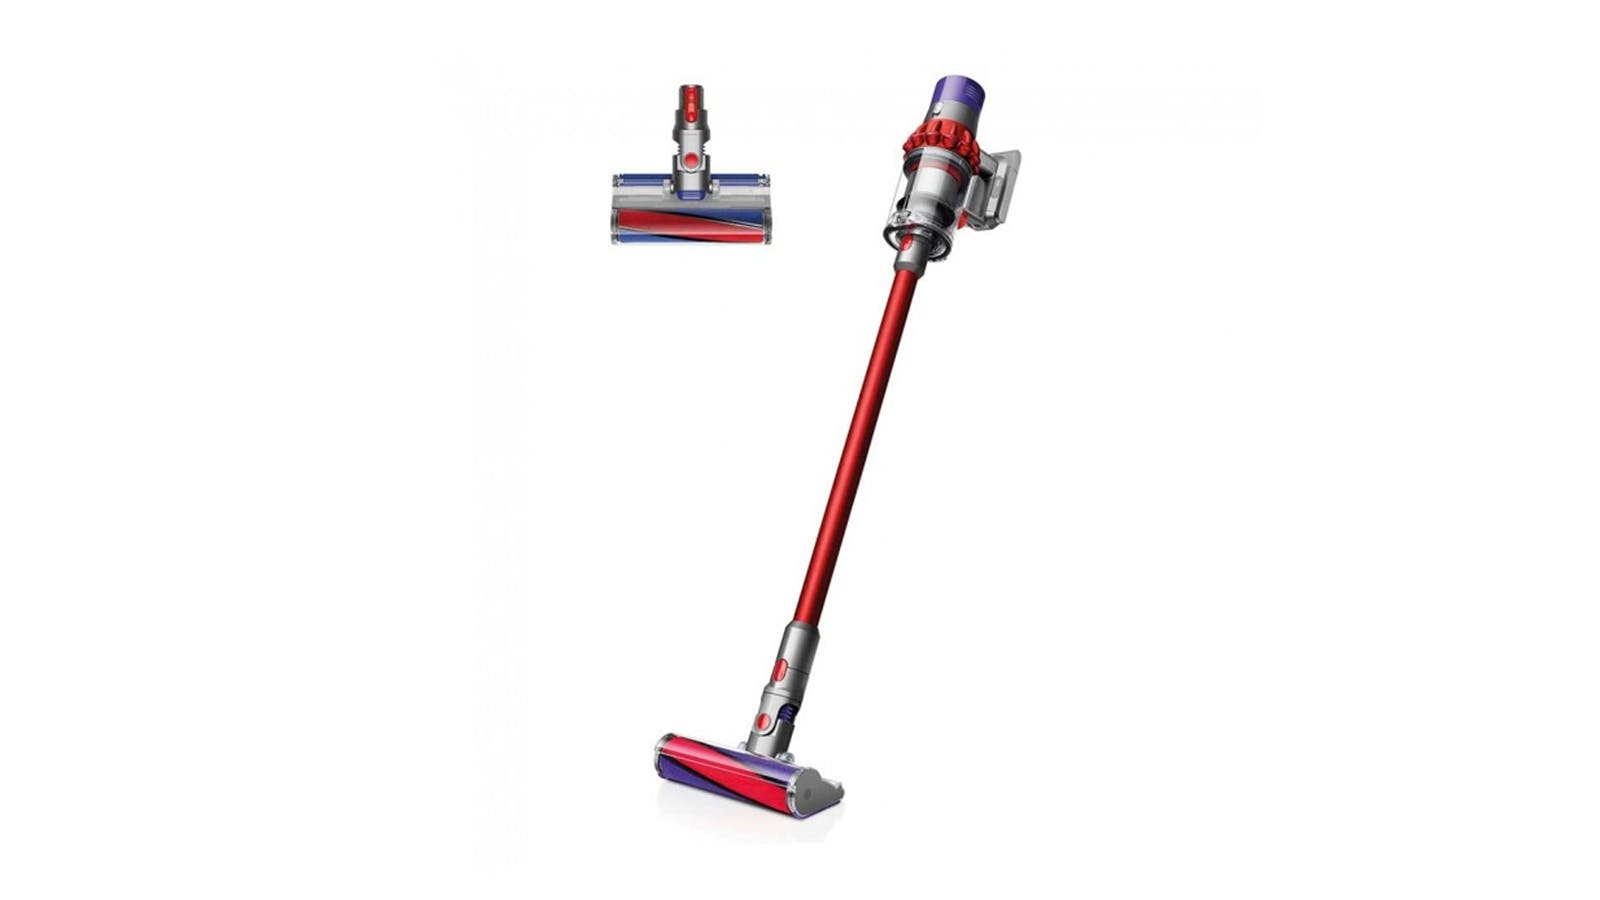 Dyson Cyclone V10 Fluffy Cordless Vacuum Cleaner Harvey